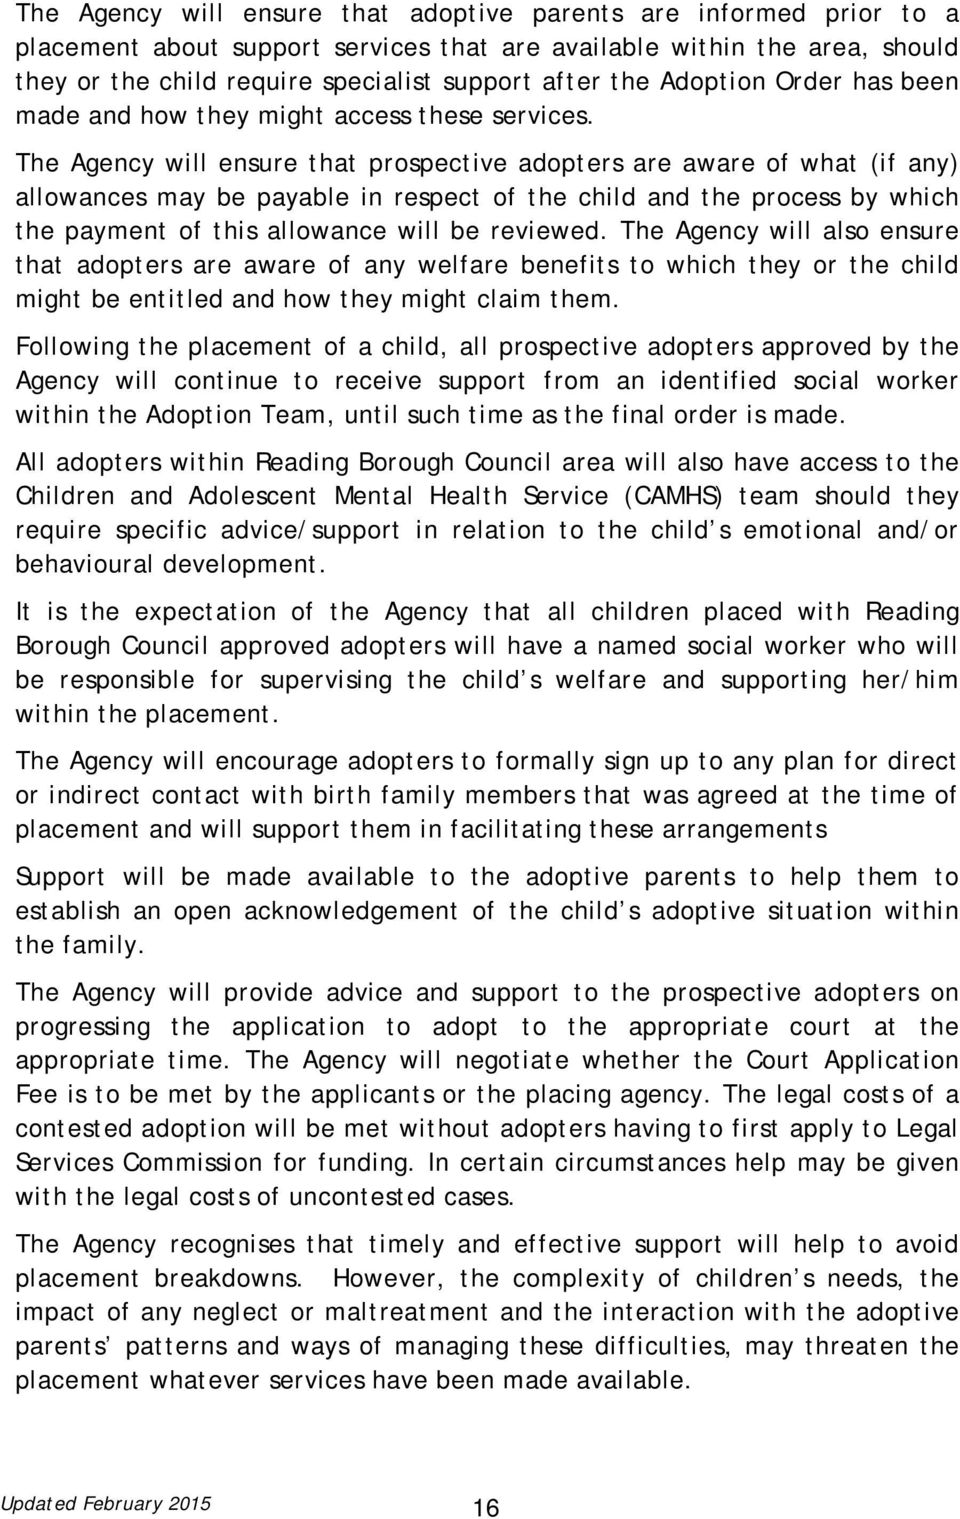 The Agency will ensure that prospective adopters are aware of what (if any) allowances may be payable in respect of the child and the process by which the payment of this allowance will be reviewed.